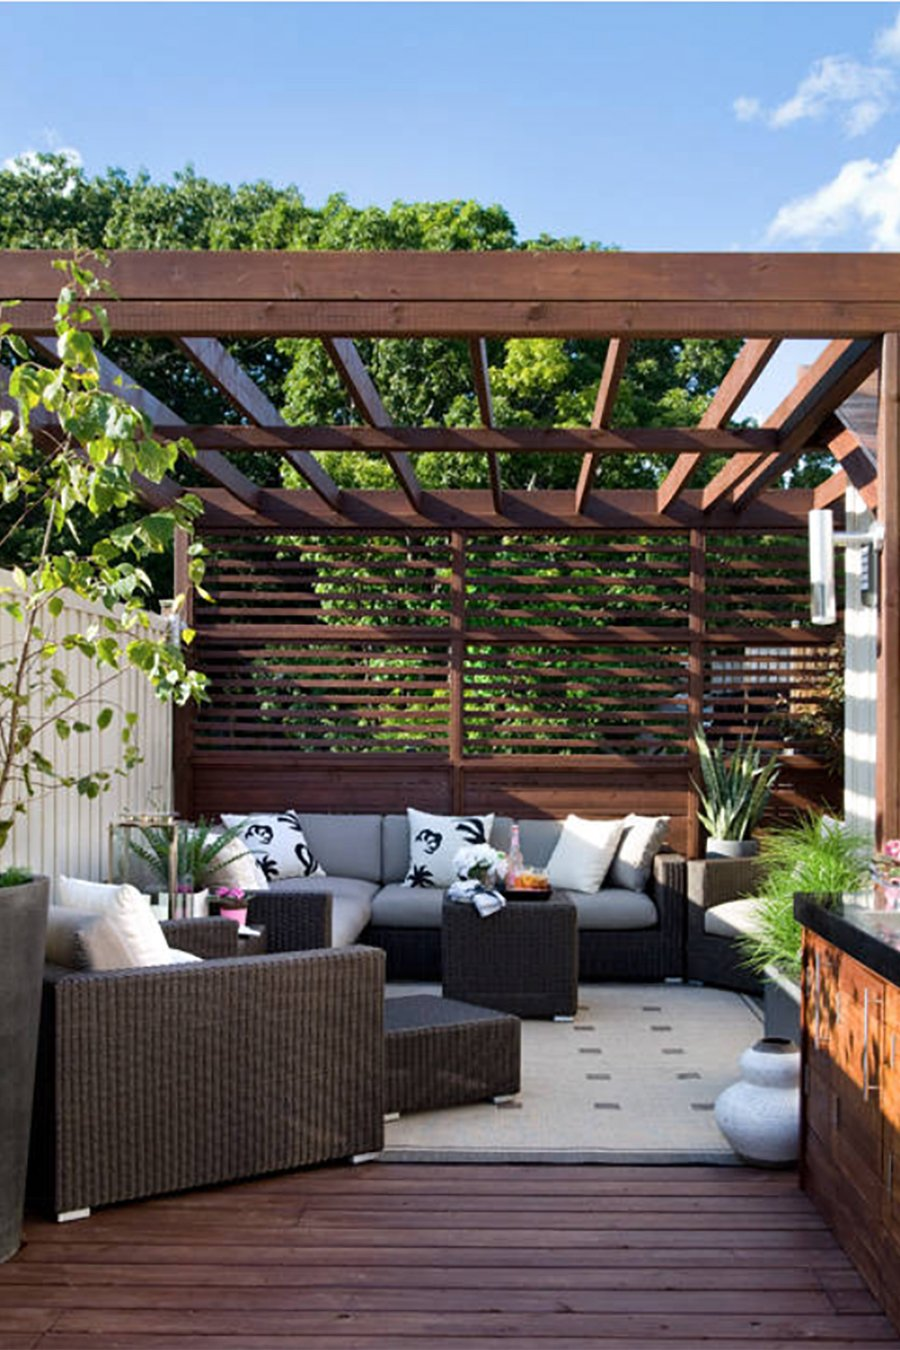 Outdoor Living: Dreamy Pergola Ideas for Our Deck on Patio With Deck Ideas id=66987